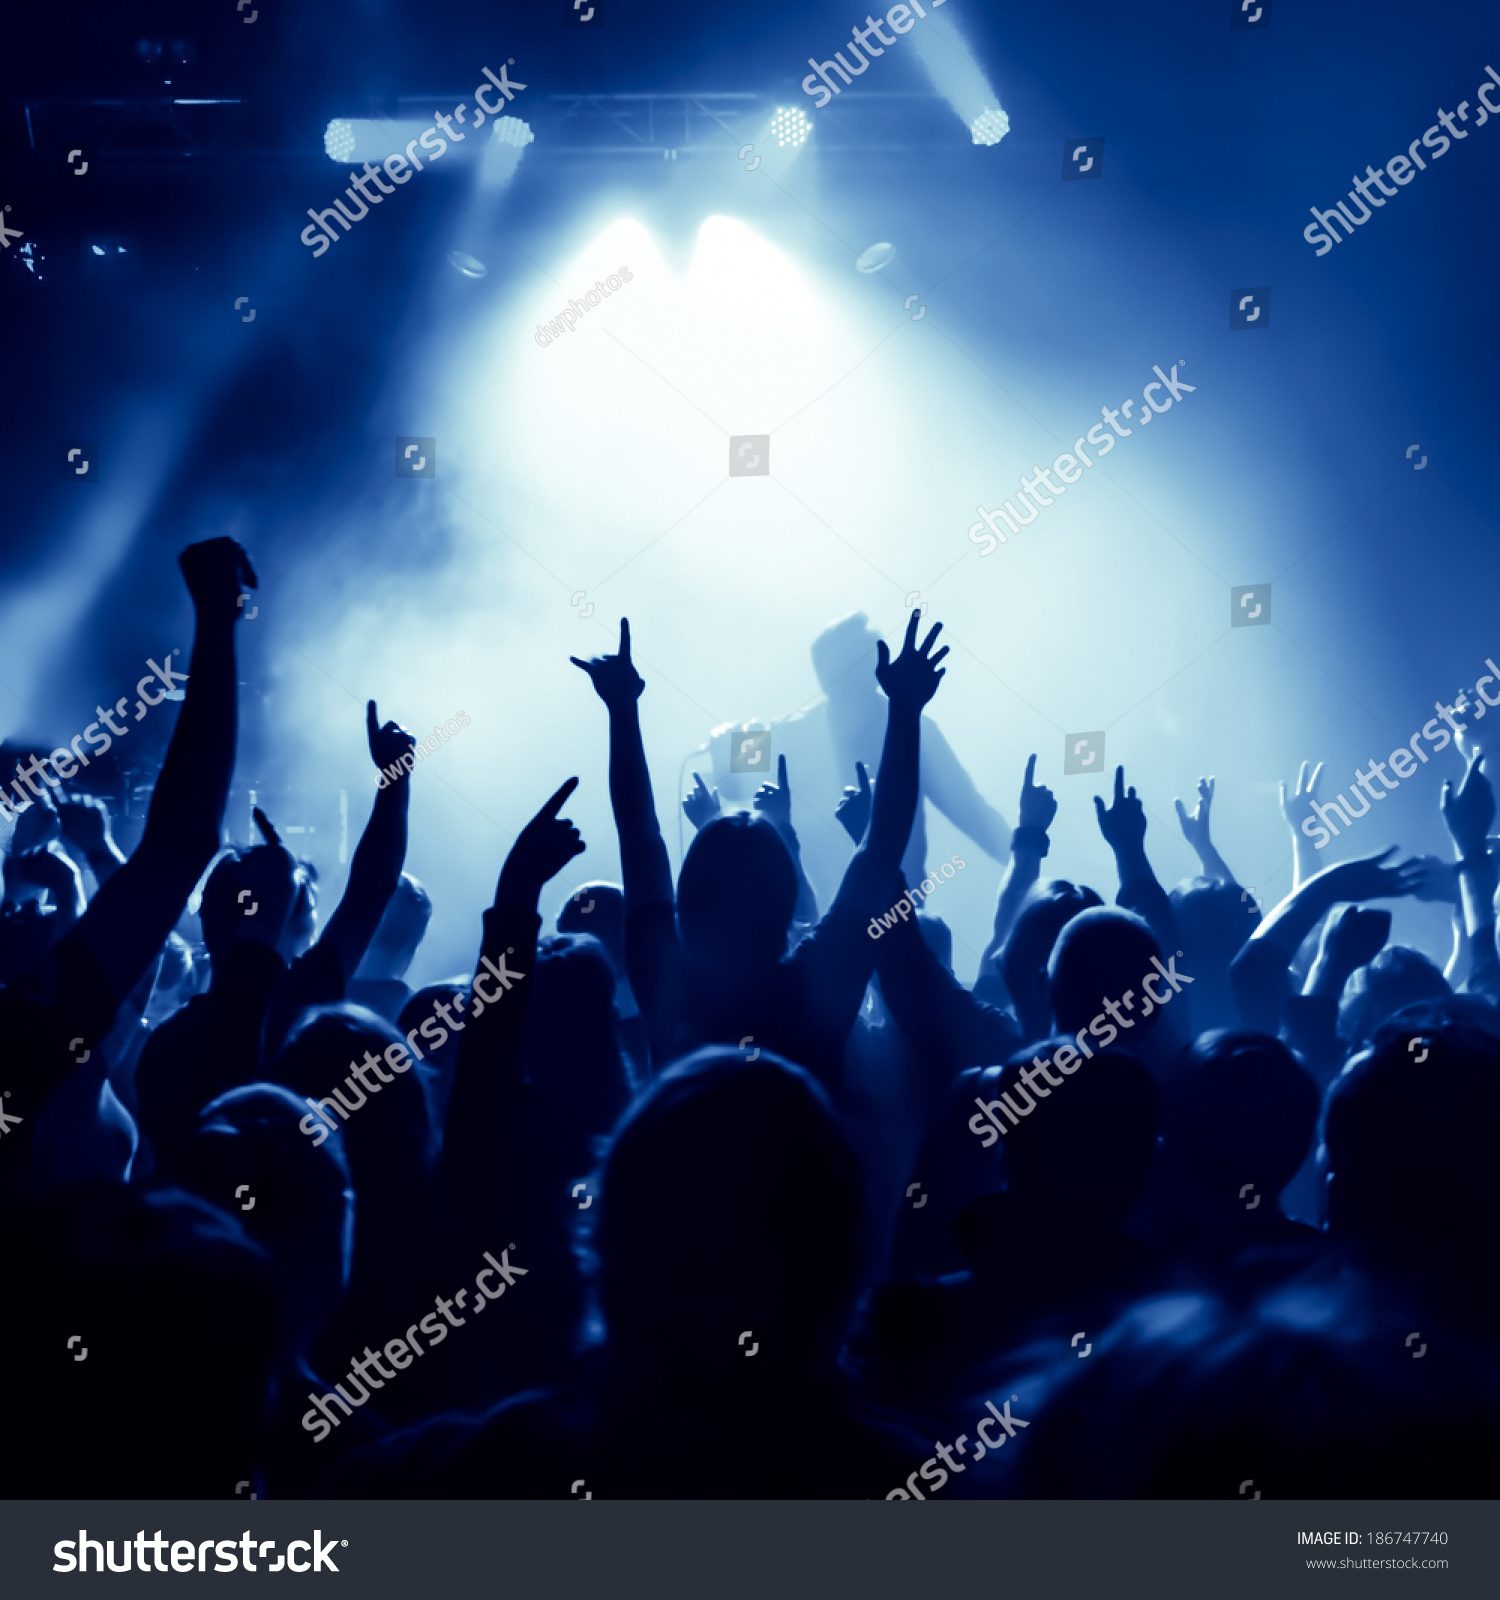 silhouettes of concert crowd in front of bright stage lights, singer on stage #186747740